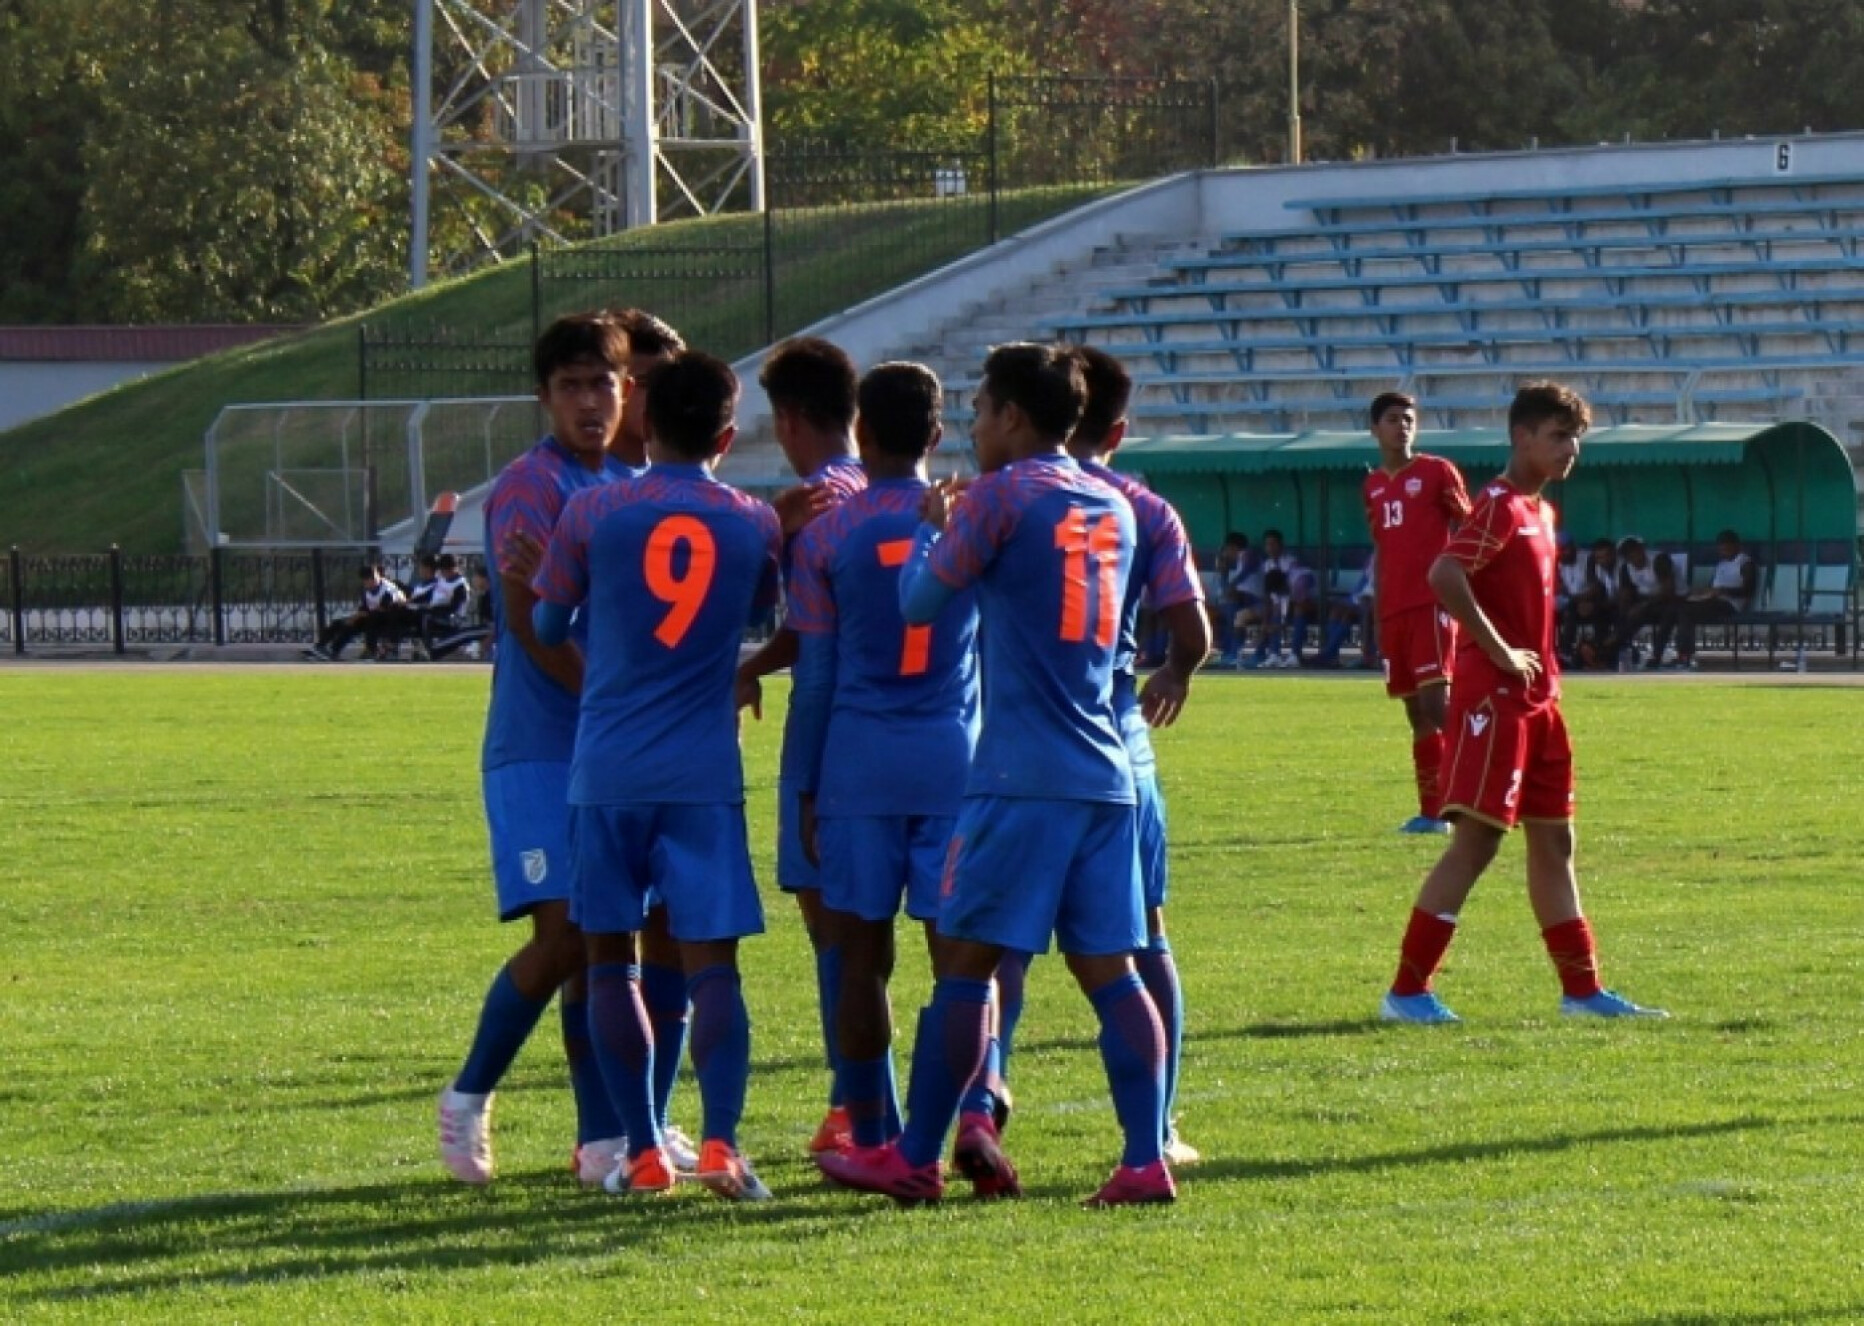 AFC U-16 Qualifiers: India rout Bahrain